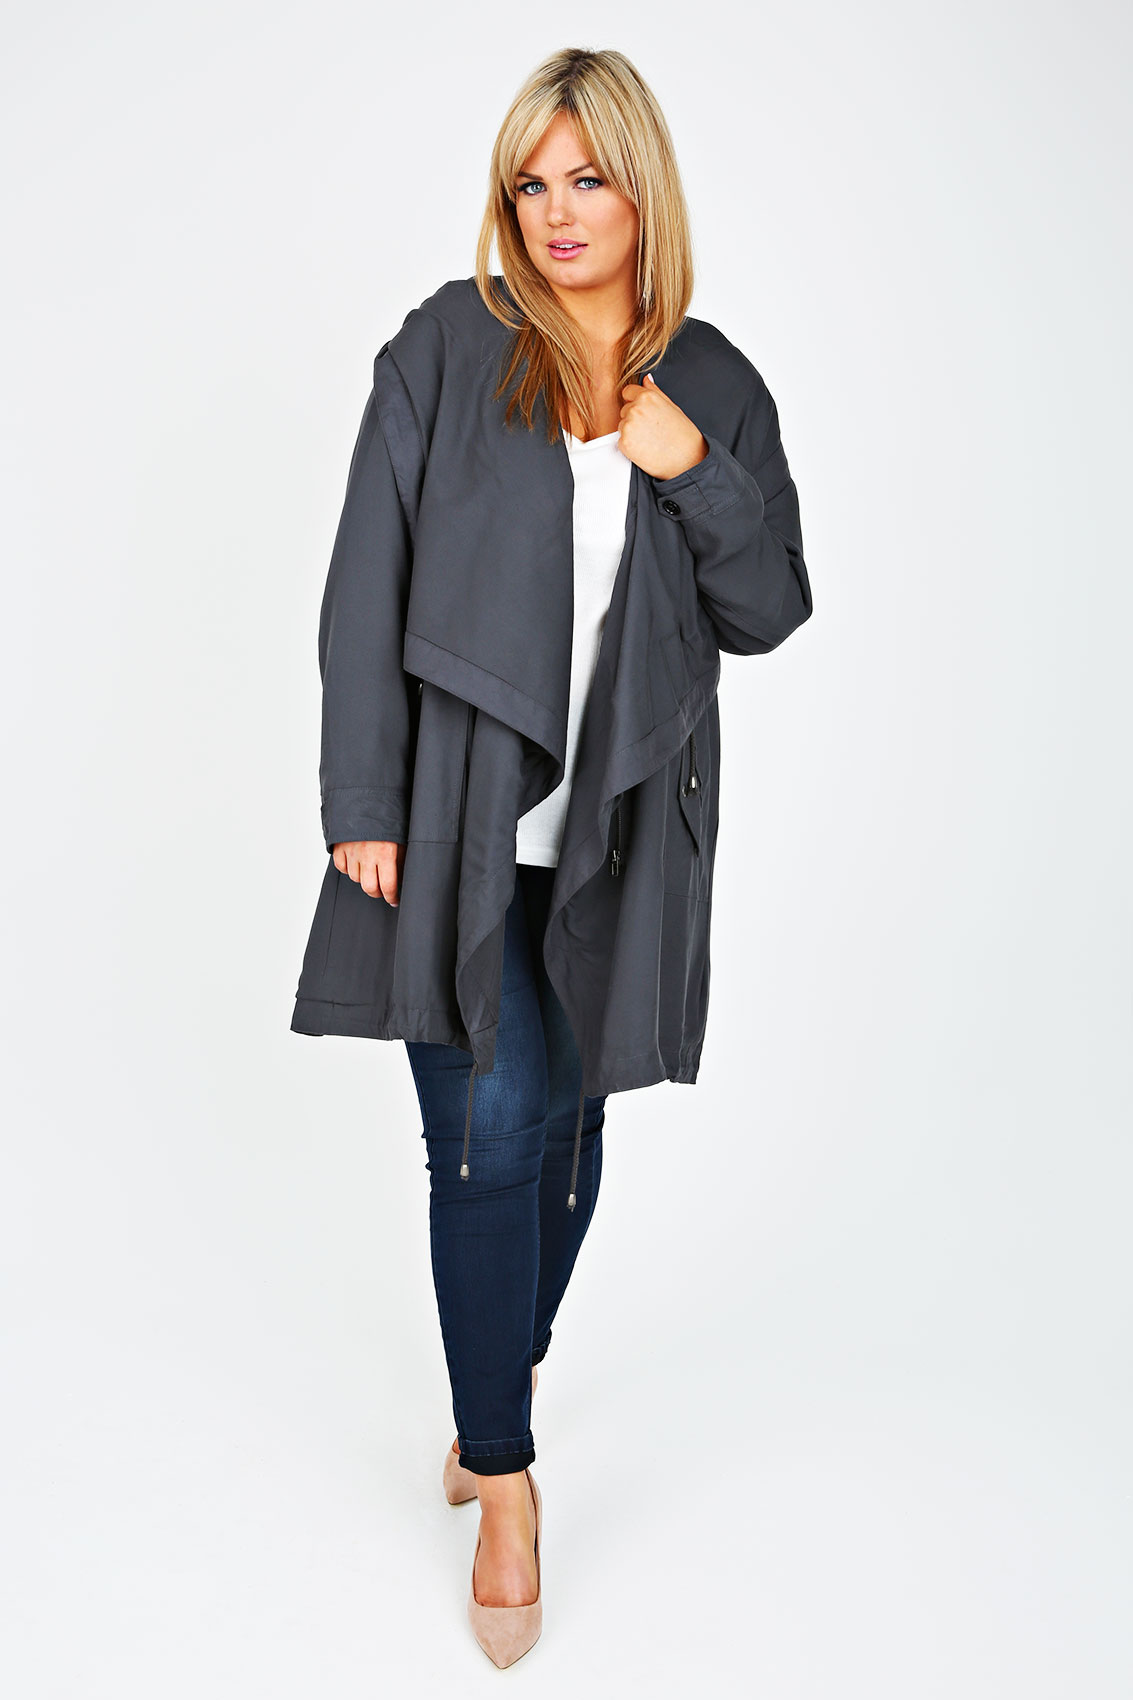 Grey Cocoon Shaped Parka Jacket With Drape Front plus Size 16 to 32